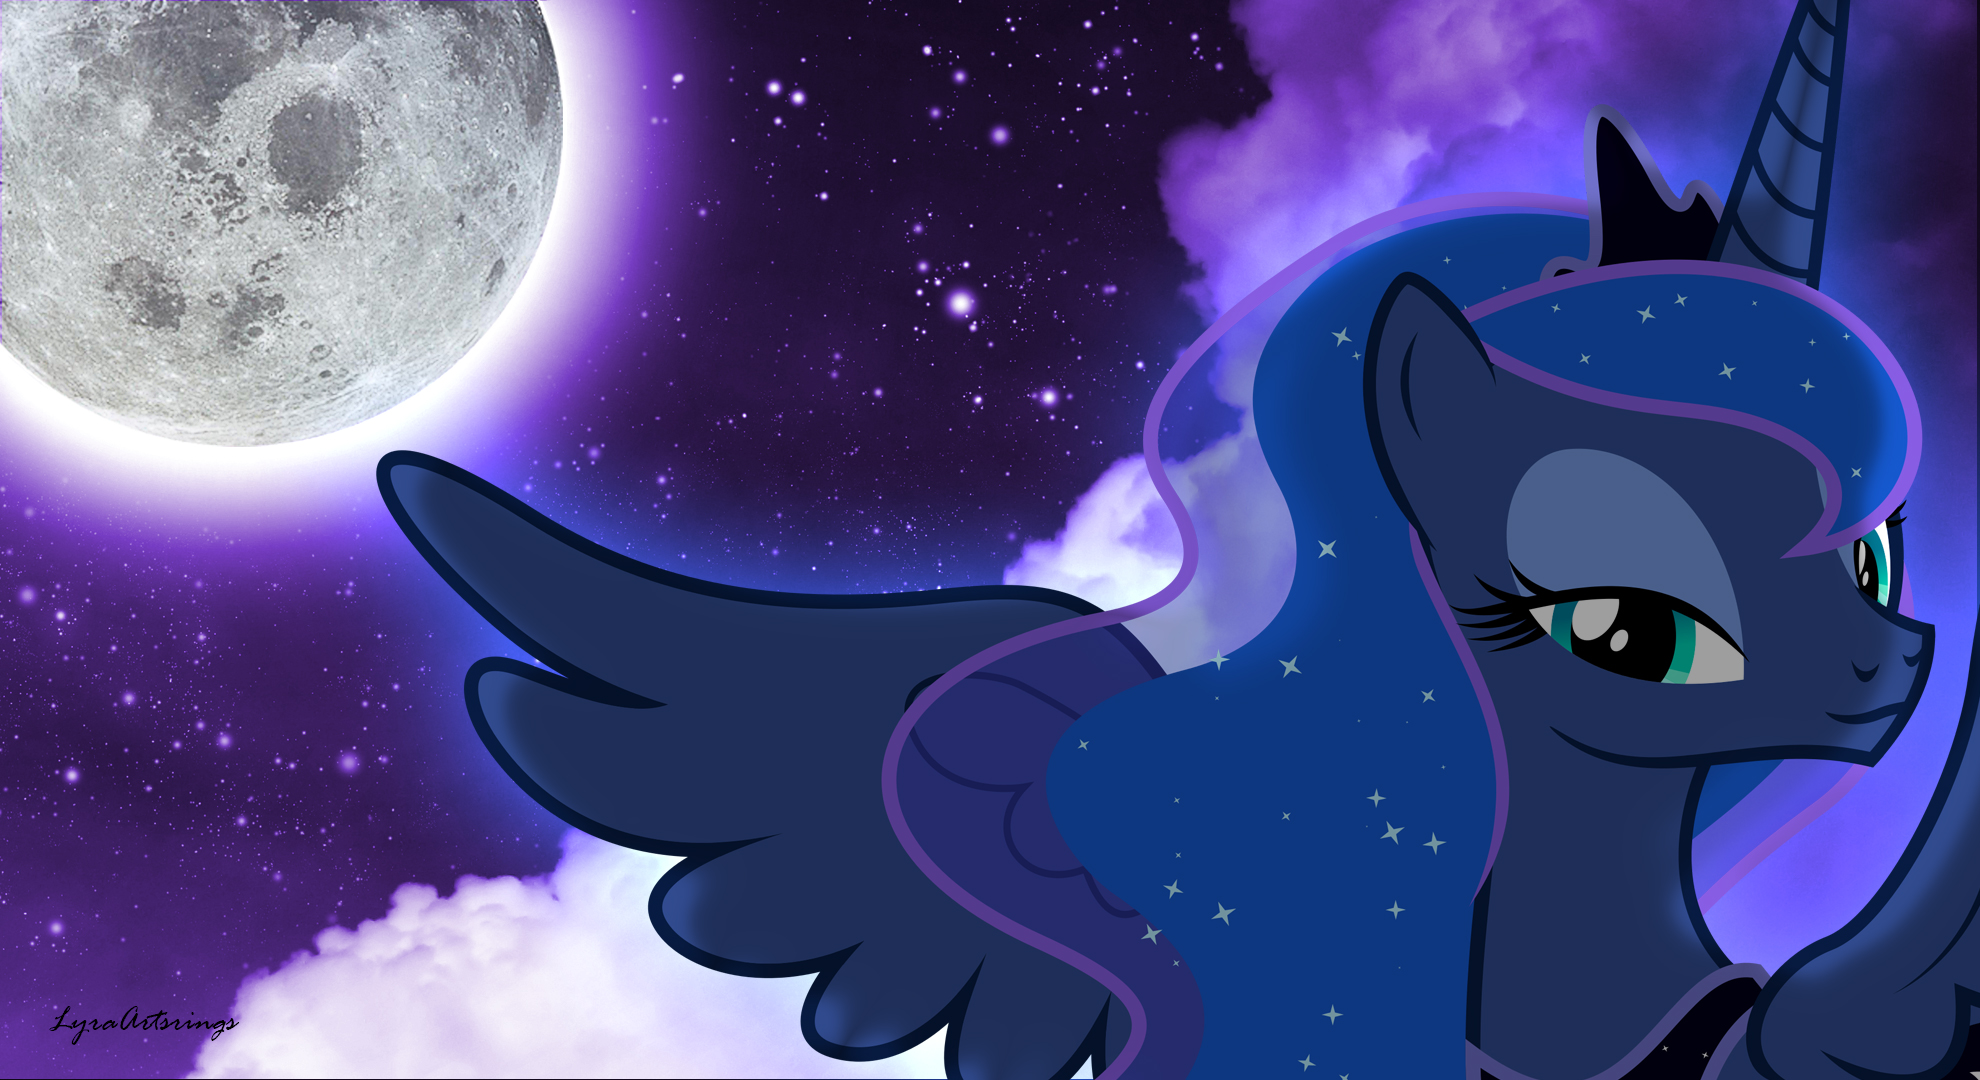 Princess Luna Wallpaper #2 (1980 X 1080) By LyraArtstrings ...